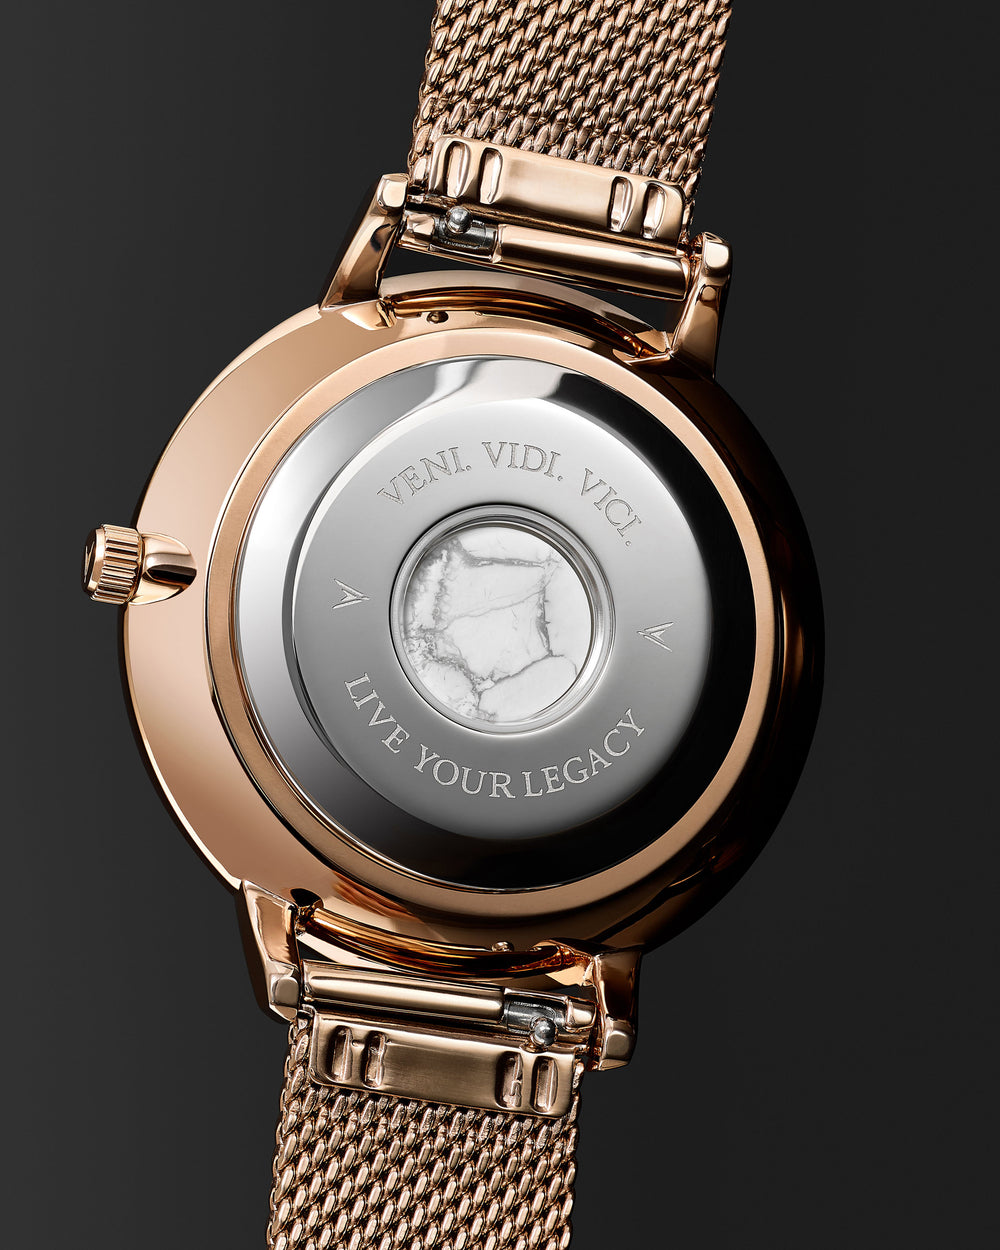 Italian Marble and 316L Stainless Steel Caseback with Veni Vidi Vici Live Your Legacy Engraving